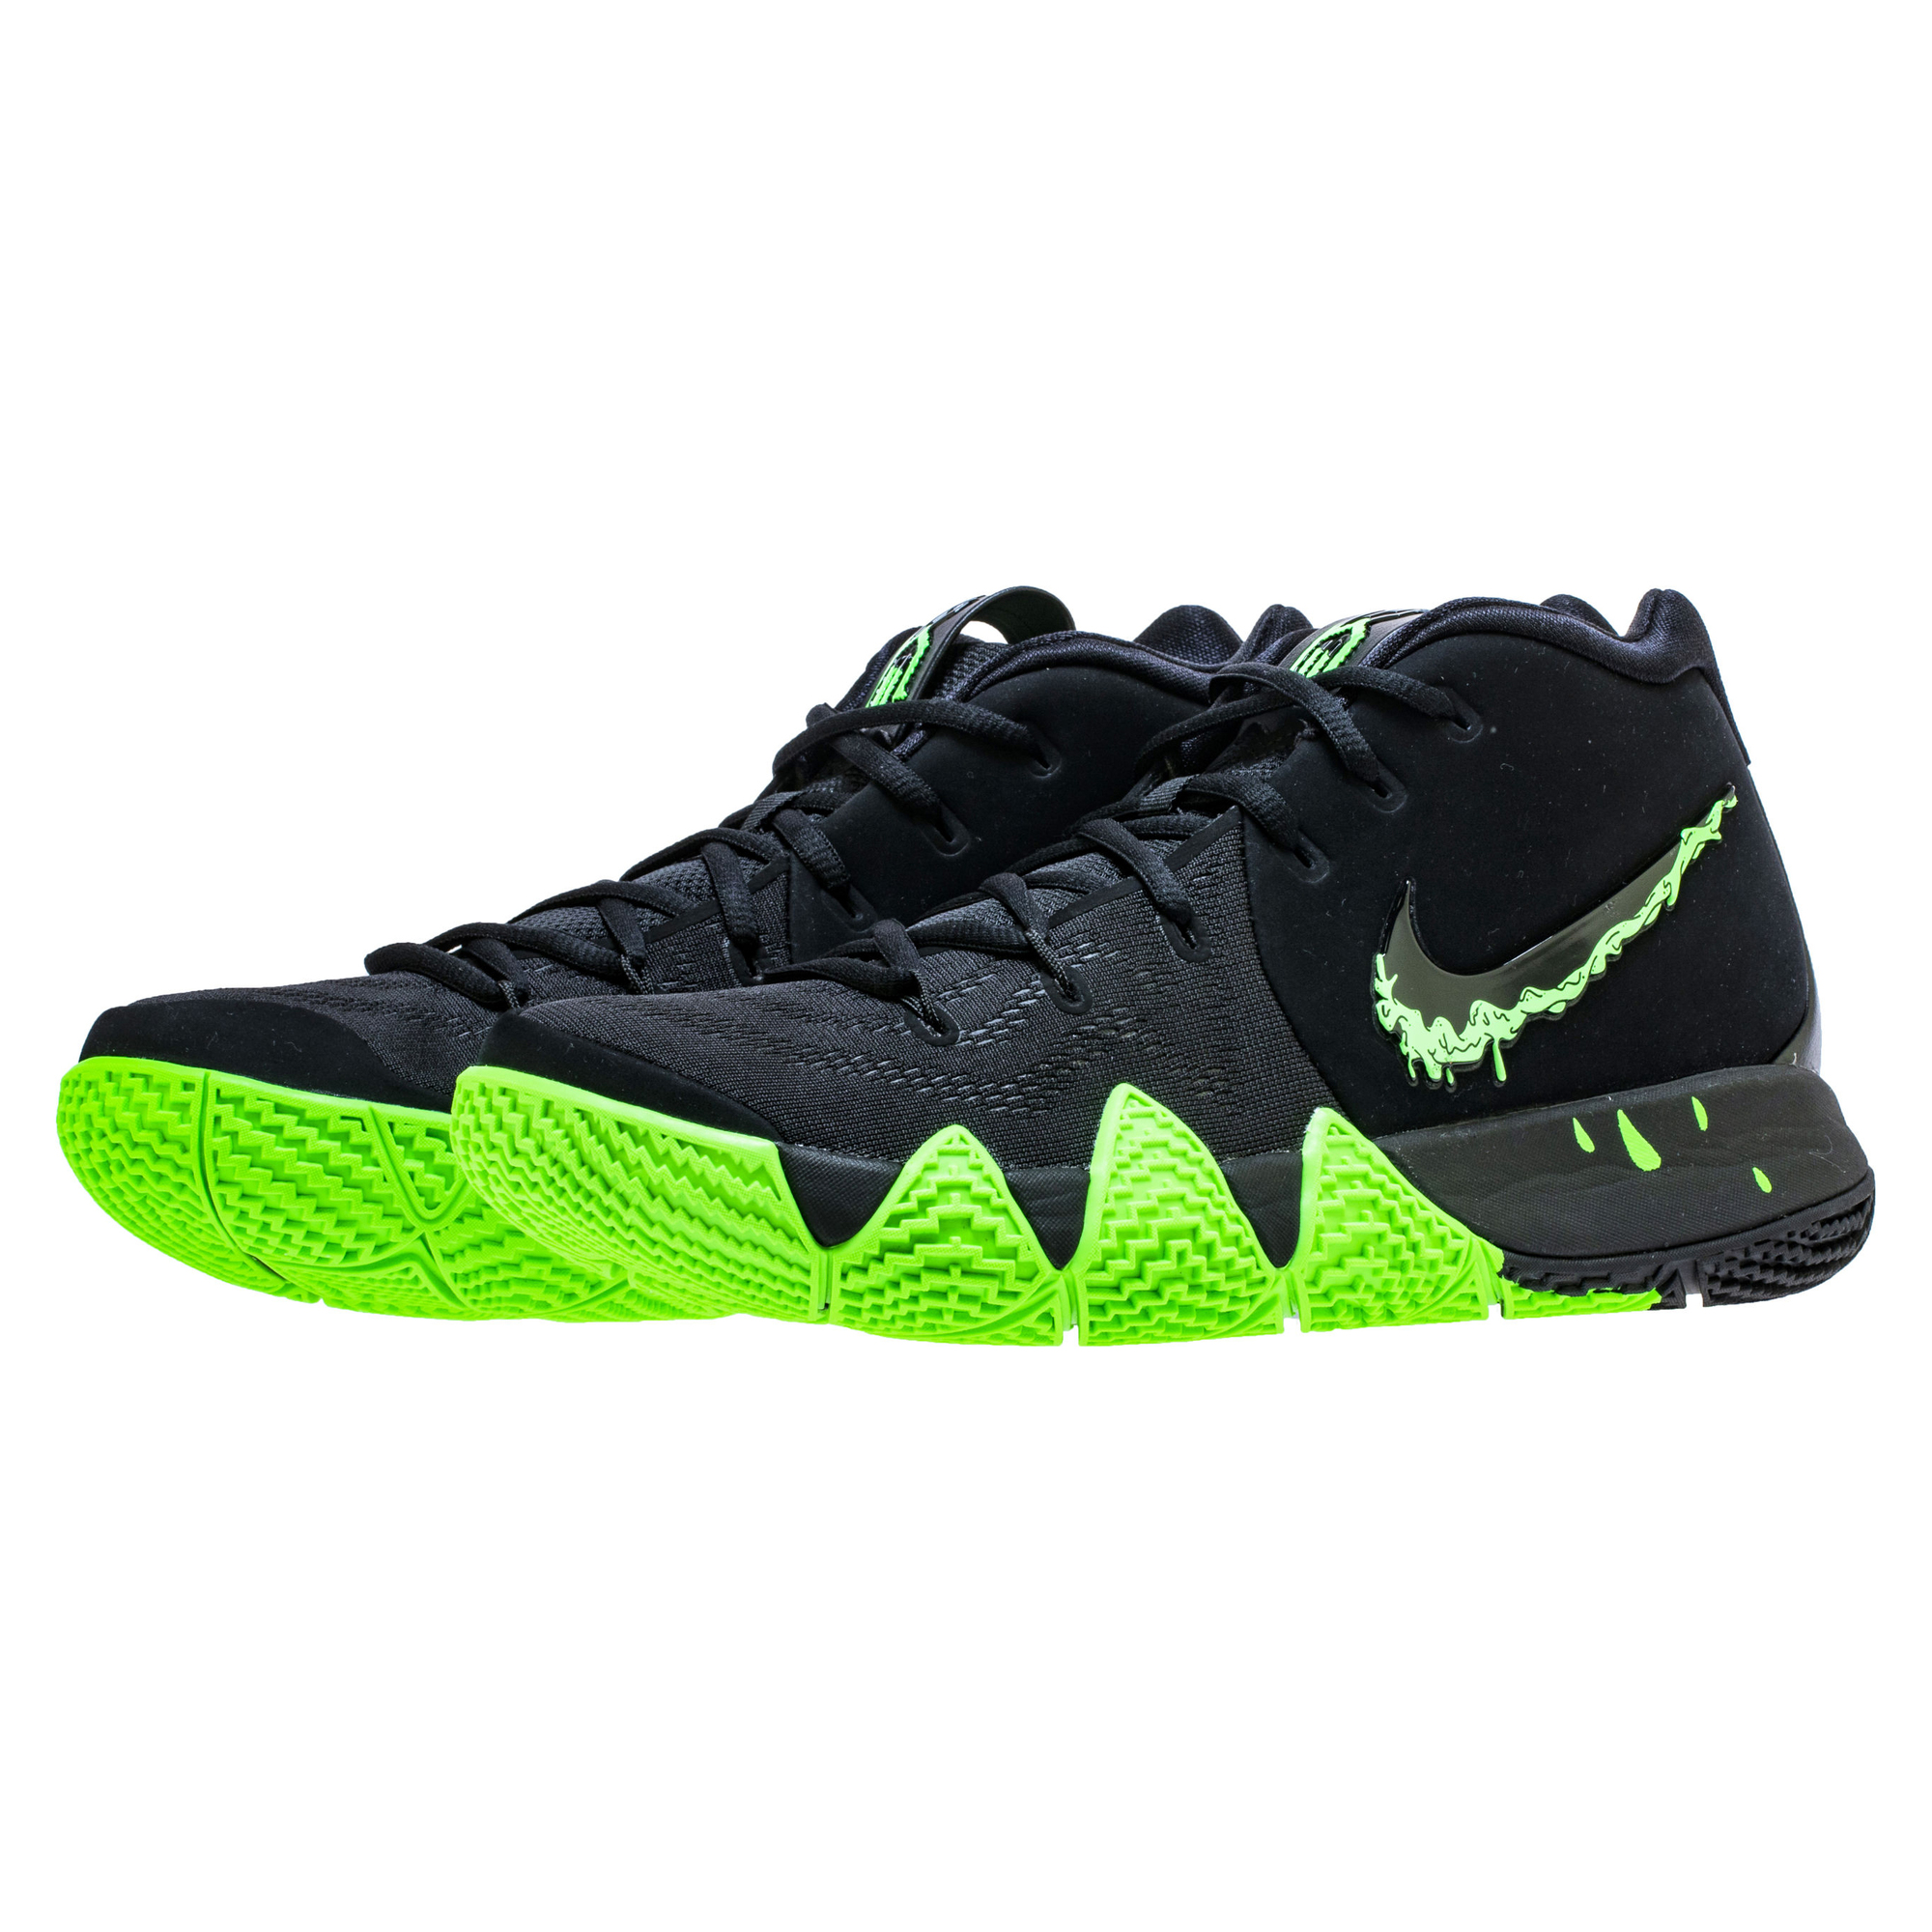 the latest 4f1b1 76223 Kyrie Irving's Latest Kyrie 4 Gets Slimed - WearTesters